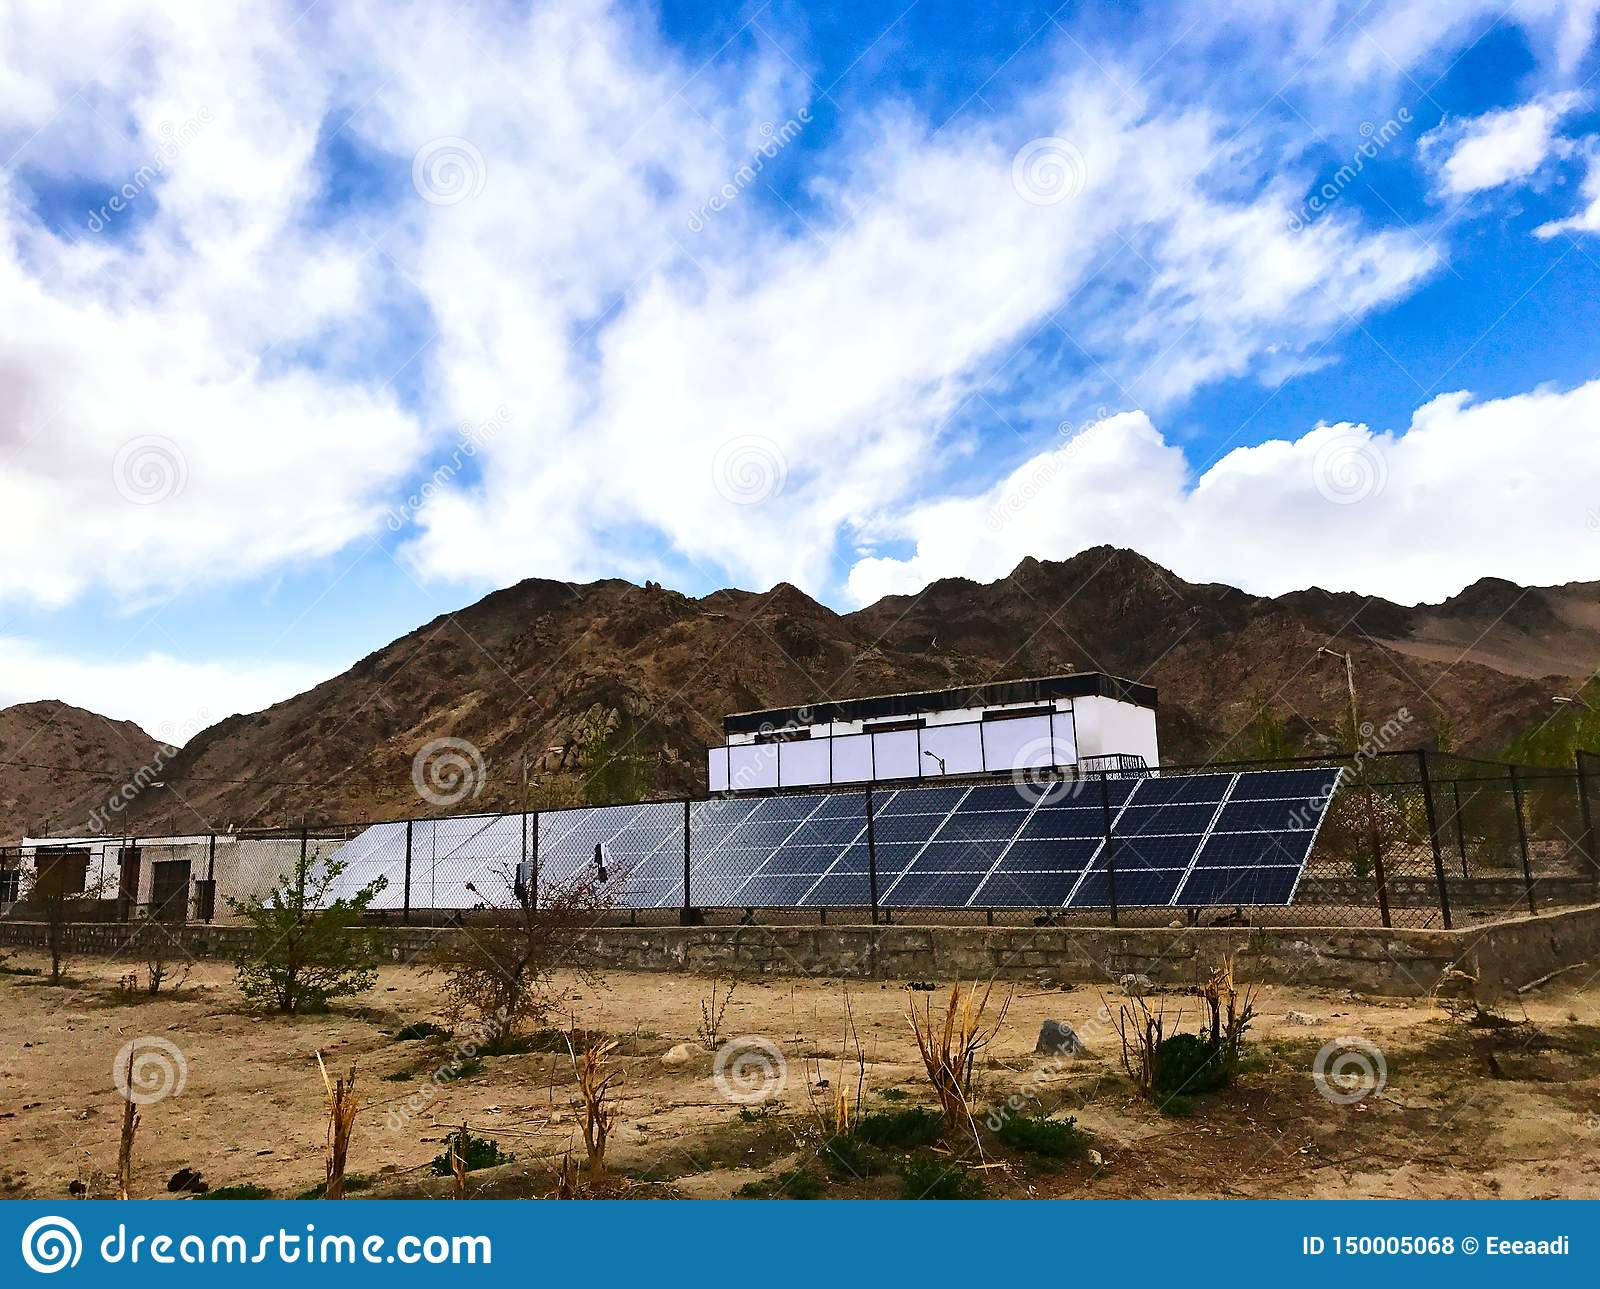 Solar power plant installed at high altitude - Laddakh, India